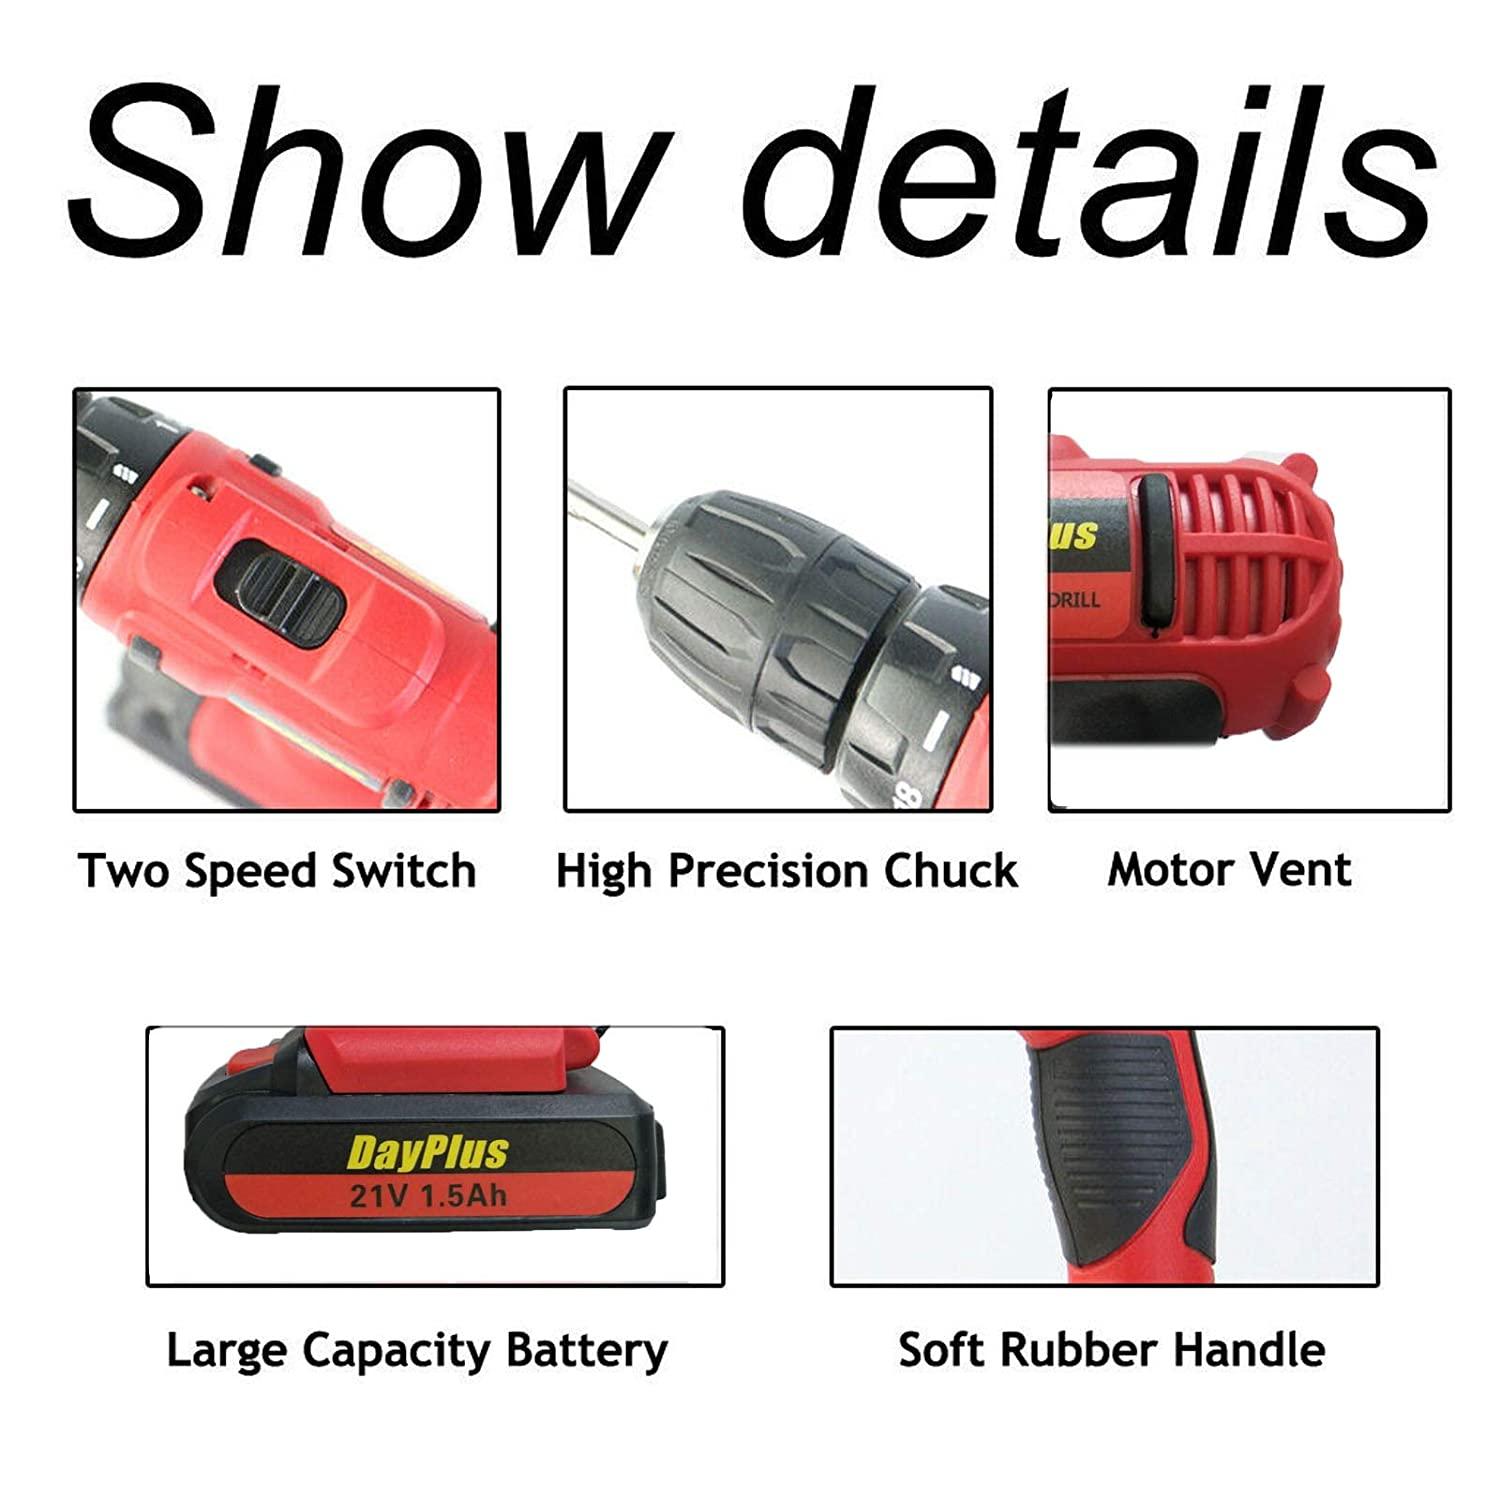 2 Batteries Kit 21V Electric Impact Drill Set Cordless Screwdriver 18+1 Torque with 1500mAh Rechargeable Lithium-ion Battery 2-Speed LED Work Light with 29pcs Drill Bits for DIY//Workshop//Garage